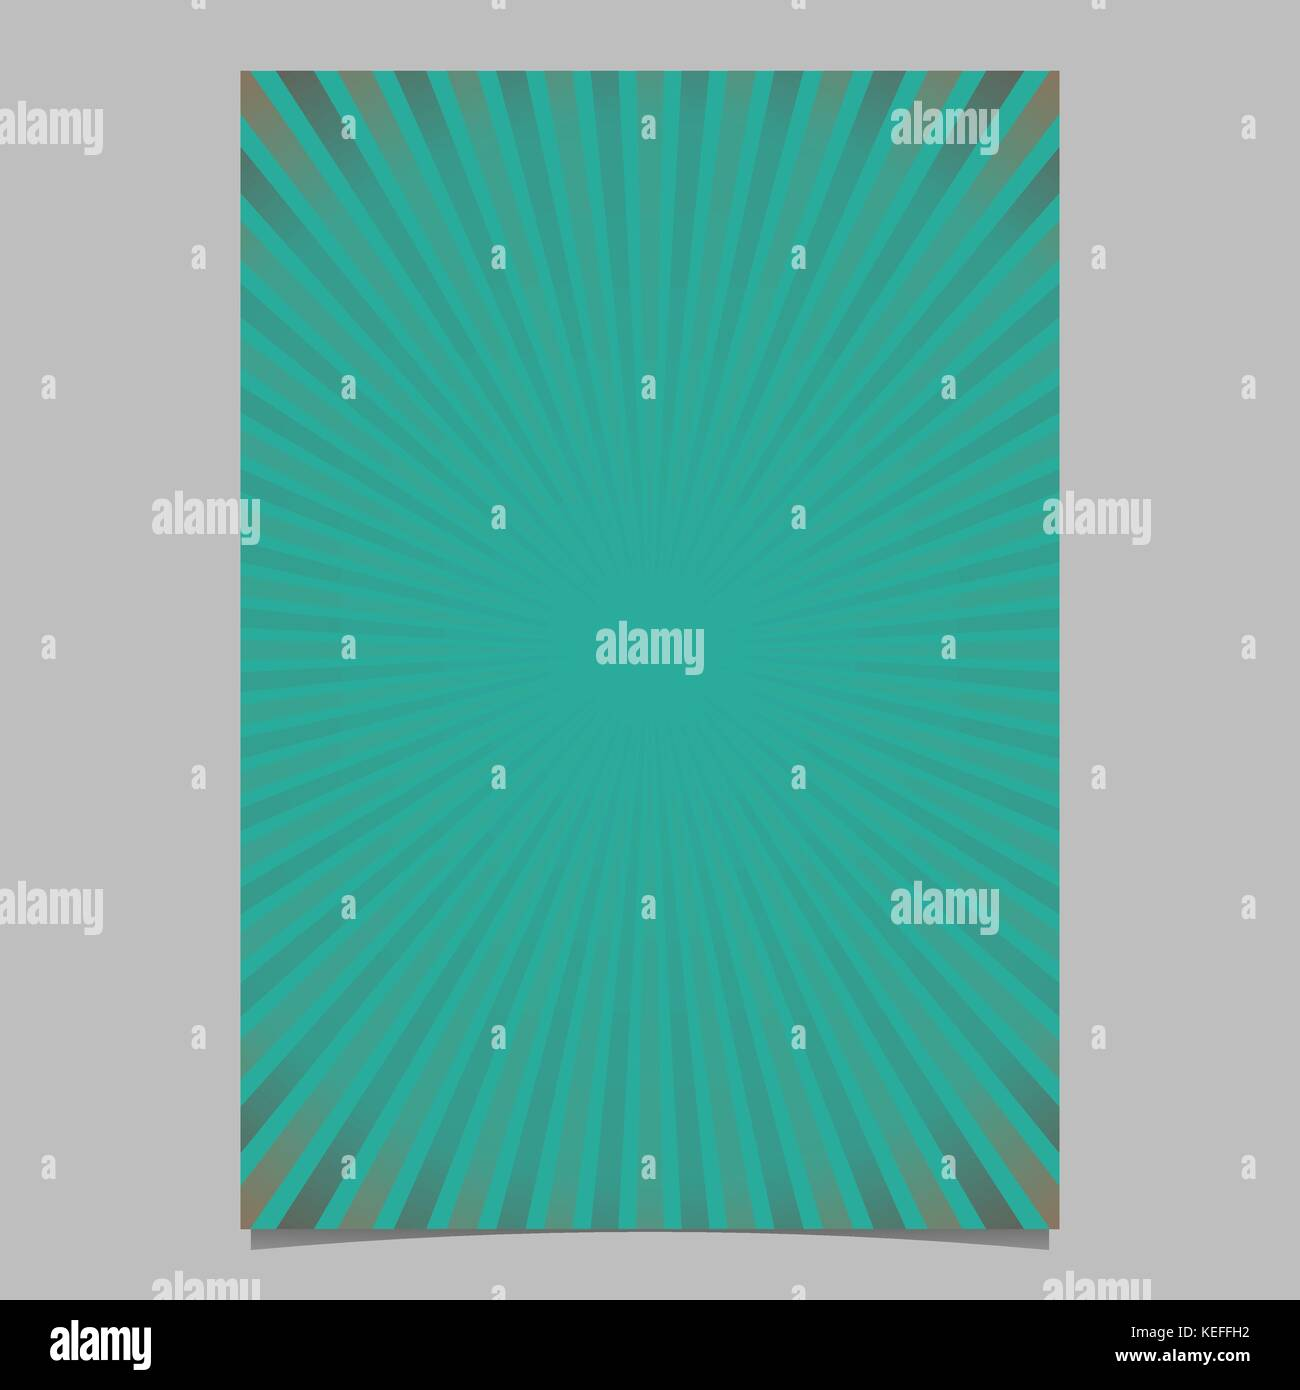 5b068622b6 Abstract gradient sunray brochure template - vector poster background  graphic design from striped rays